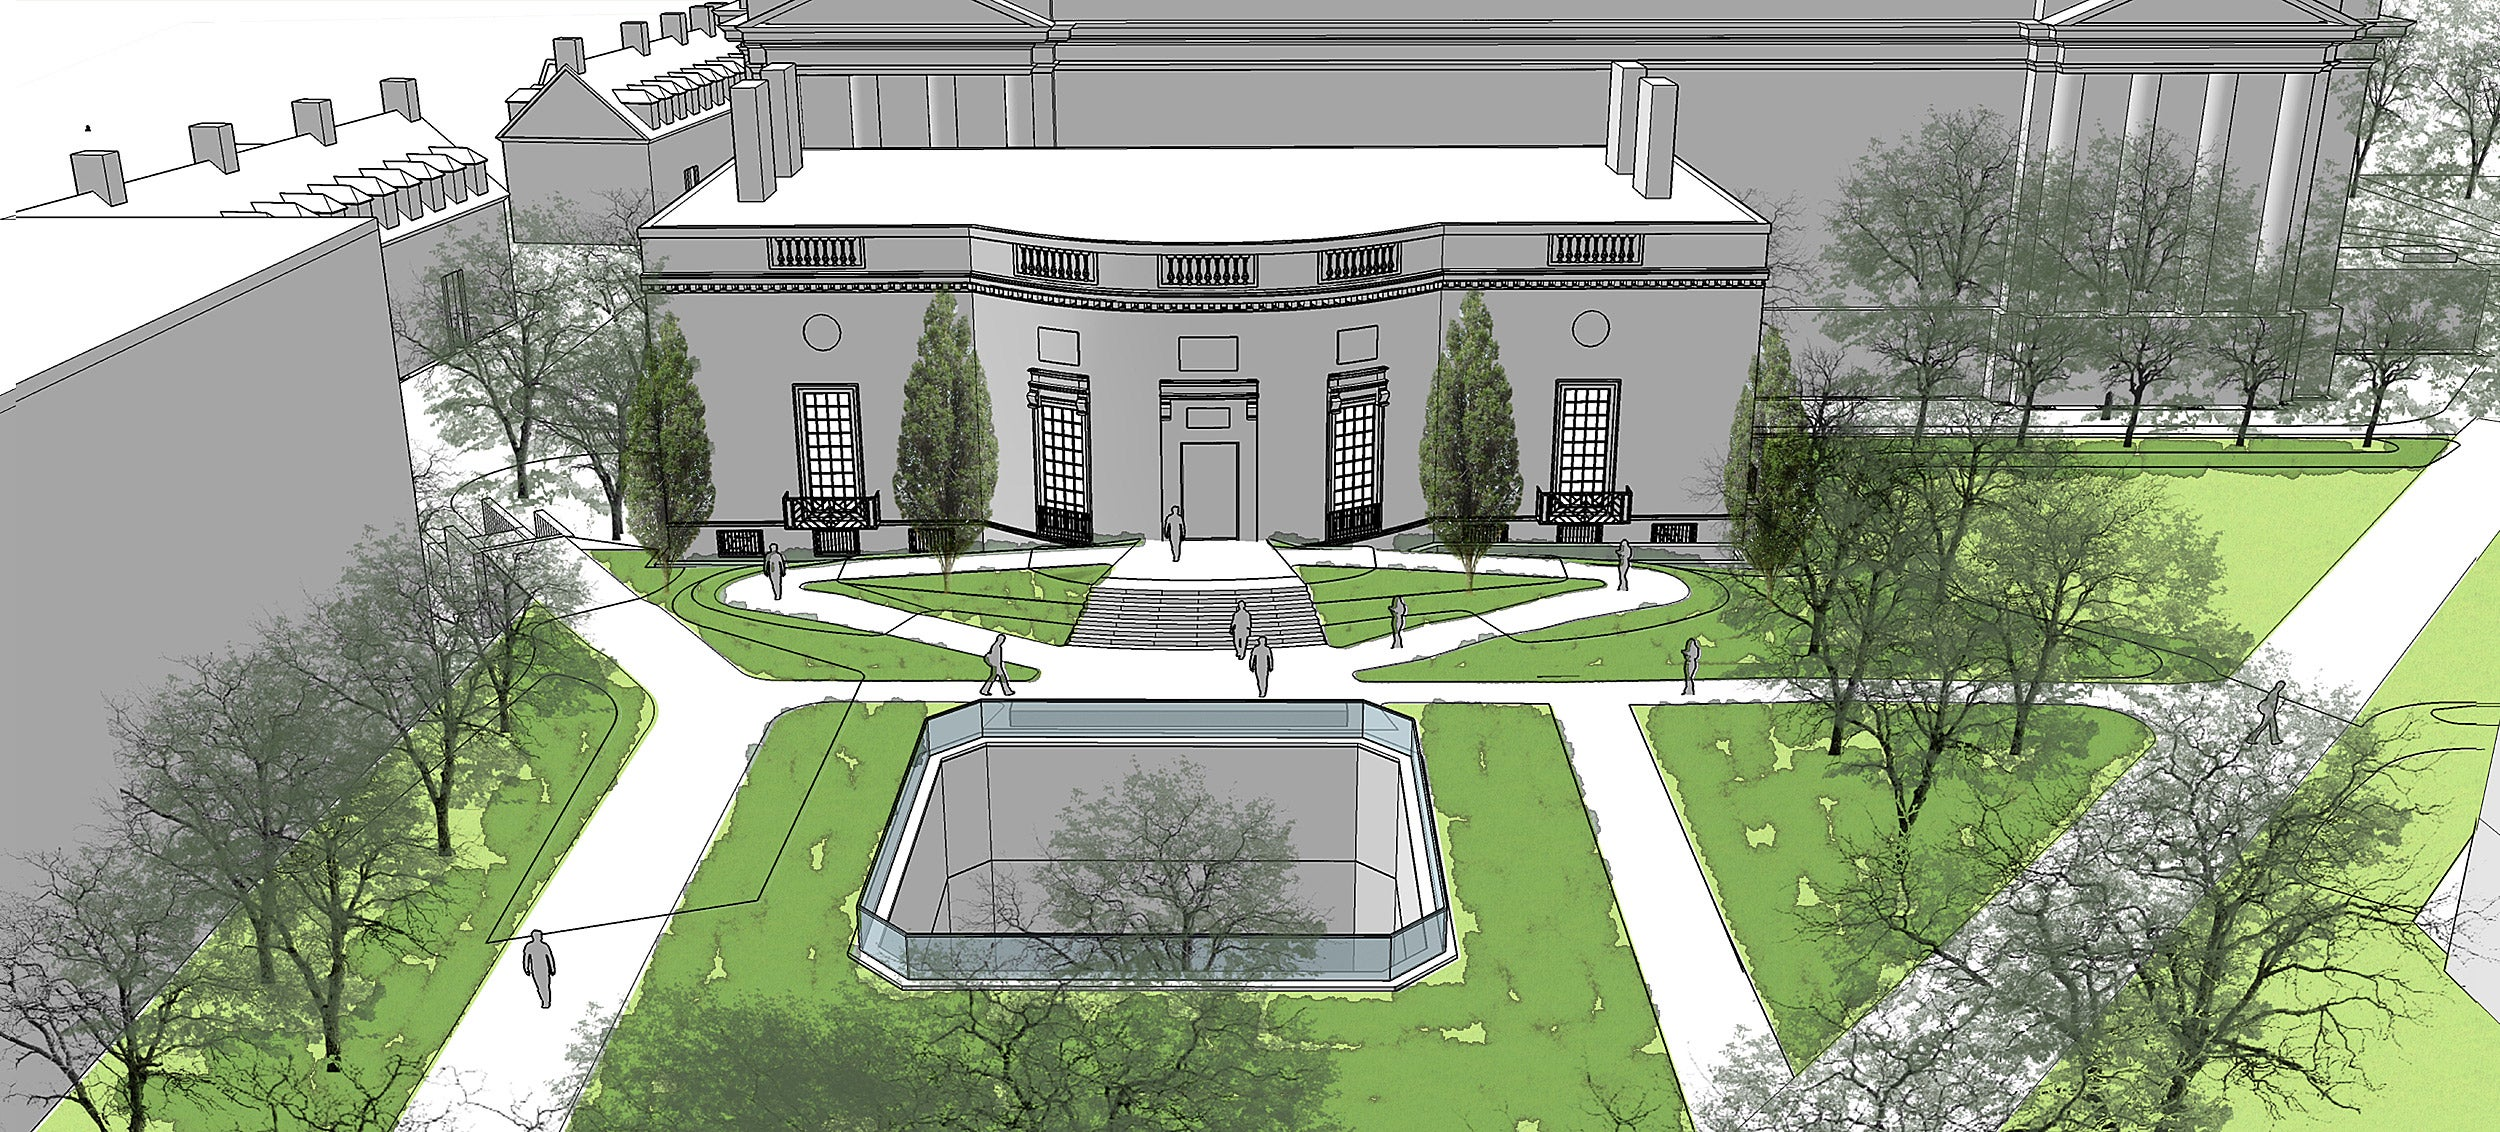 Rendering of Houghton Library renovation, exterior.